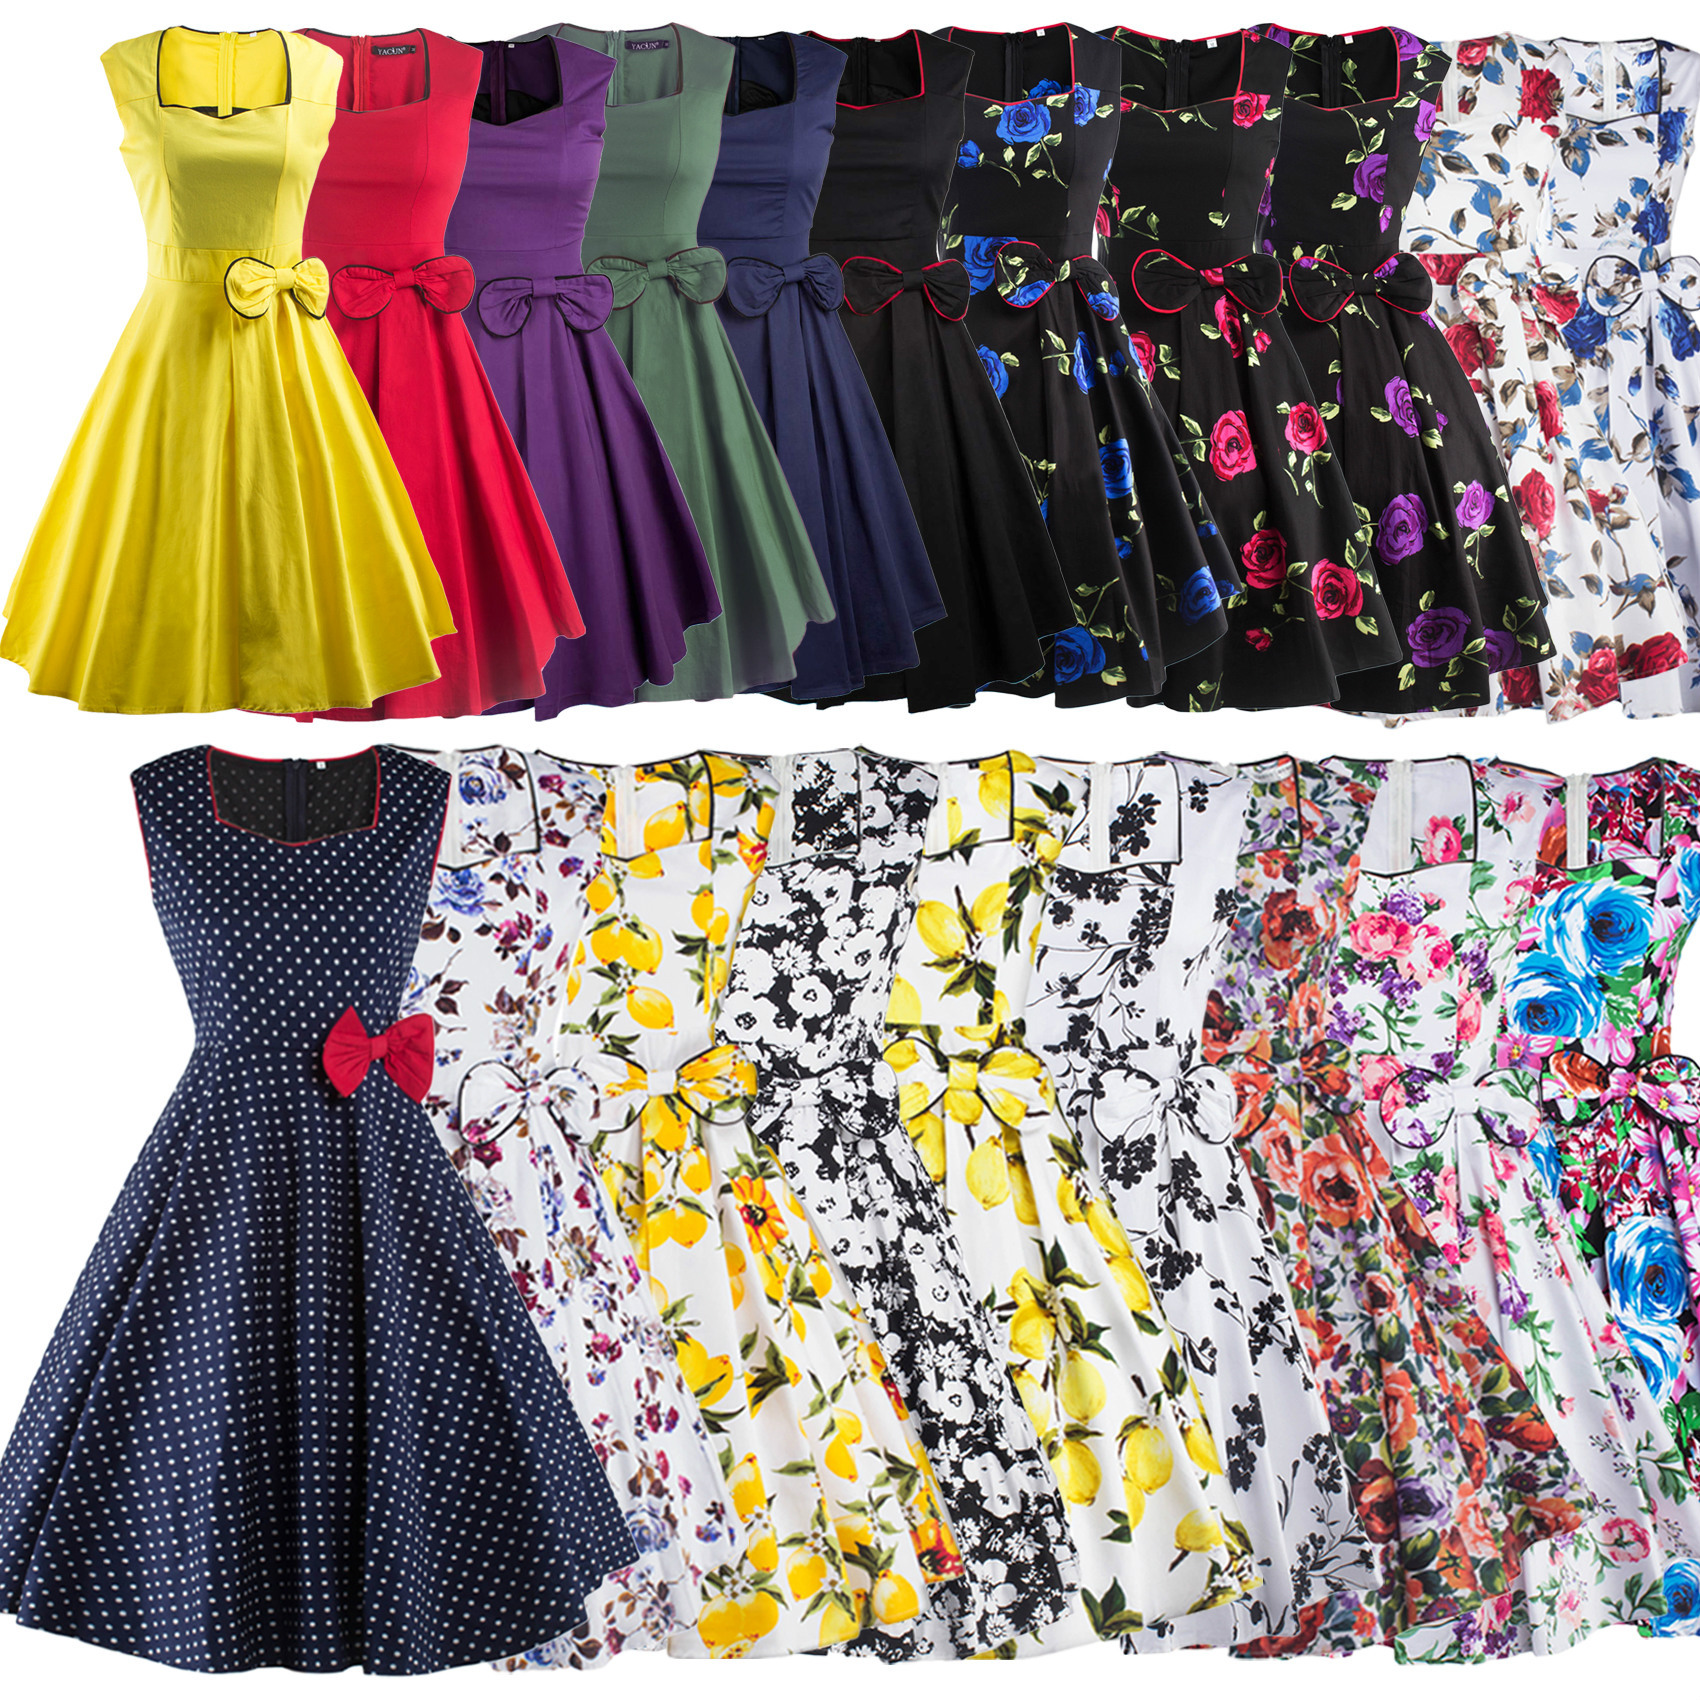 Audrey Hepburn Style <font><b>1950s</b></font> <font><b>60s</b></font> <font><b>Dresses</b></font> Summer Sleeveless <font><b>Dress</b></font> Women Retro rockabilly <font><b>Dresses</b></font> 19 colors size S-2XL image